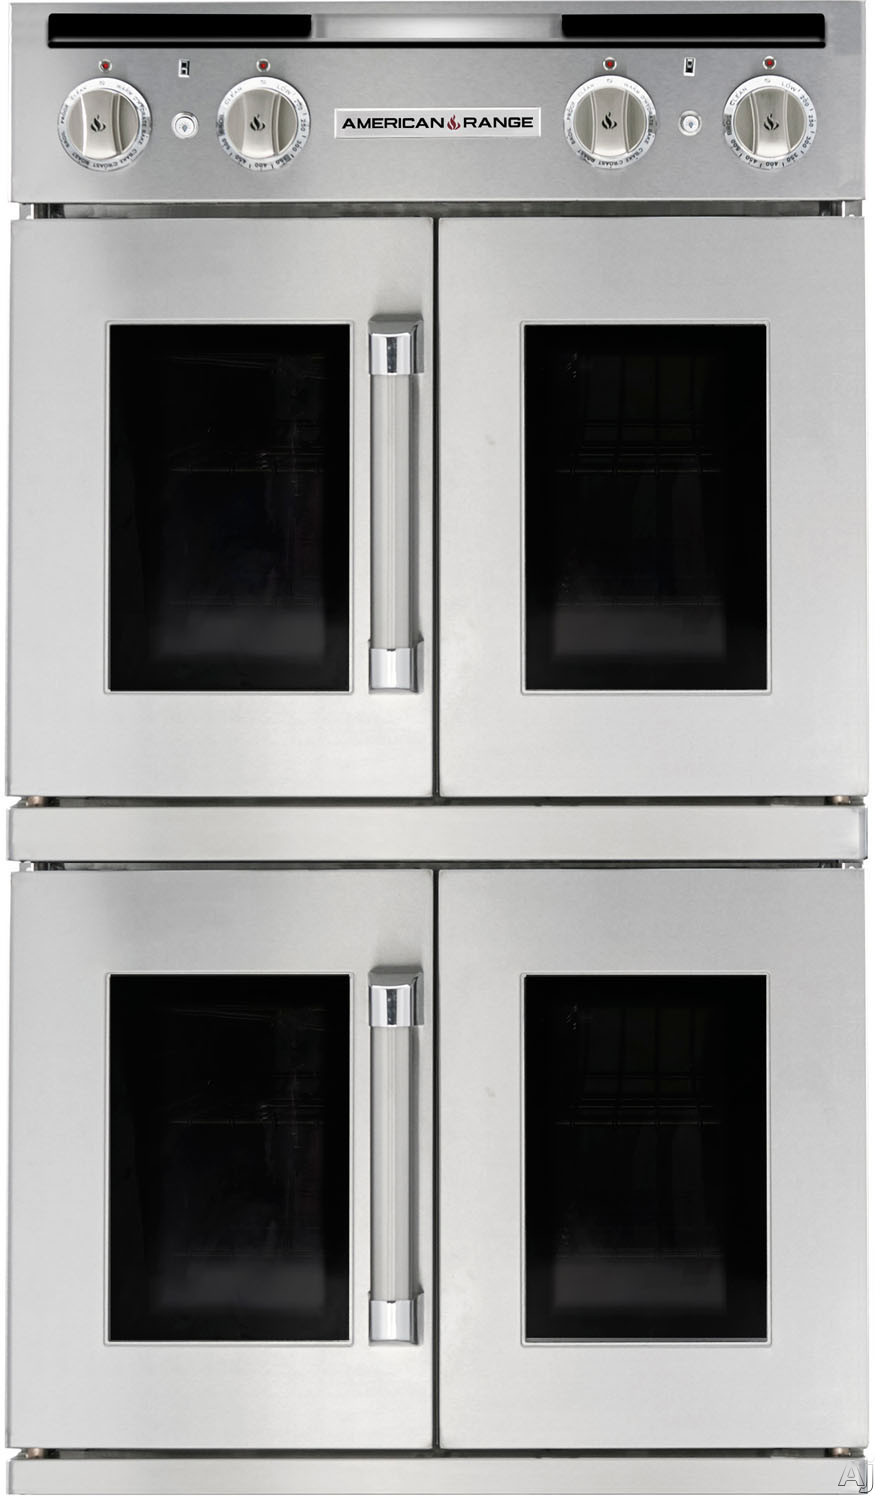 American Range Legacy Series AROFFG230L 30 Inch Double French Door Gas Wall Oven with 4.7 cu. ft. Capacity, Innovection Convection, Manual Clean, Infrared Broiler, Proofing and Porcelainized Interior: